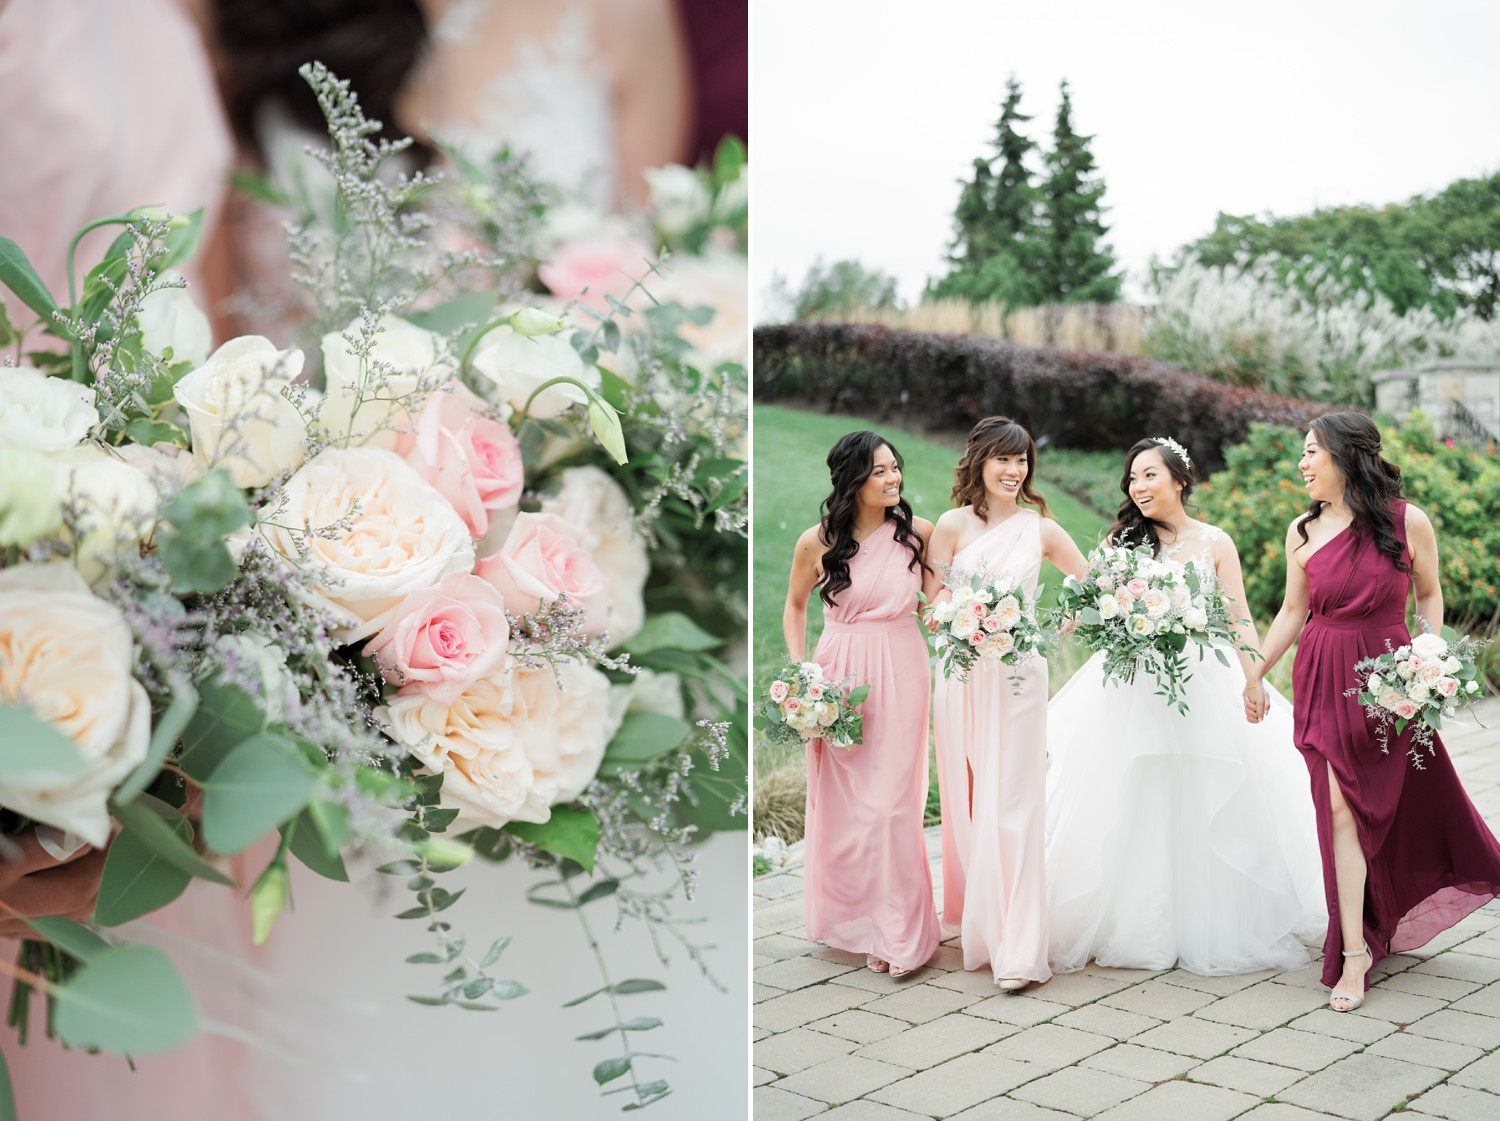 Bridesmaids_Eagles_Nest_Golf_Club_Wedding_Photos_Toronto_Wedding_Photographer-Rhythm_Photography